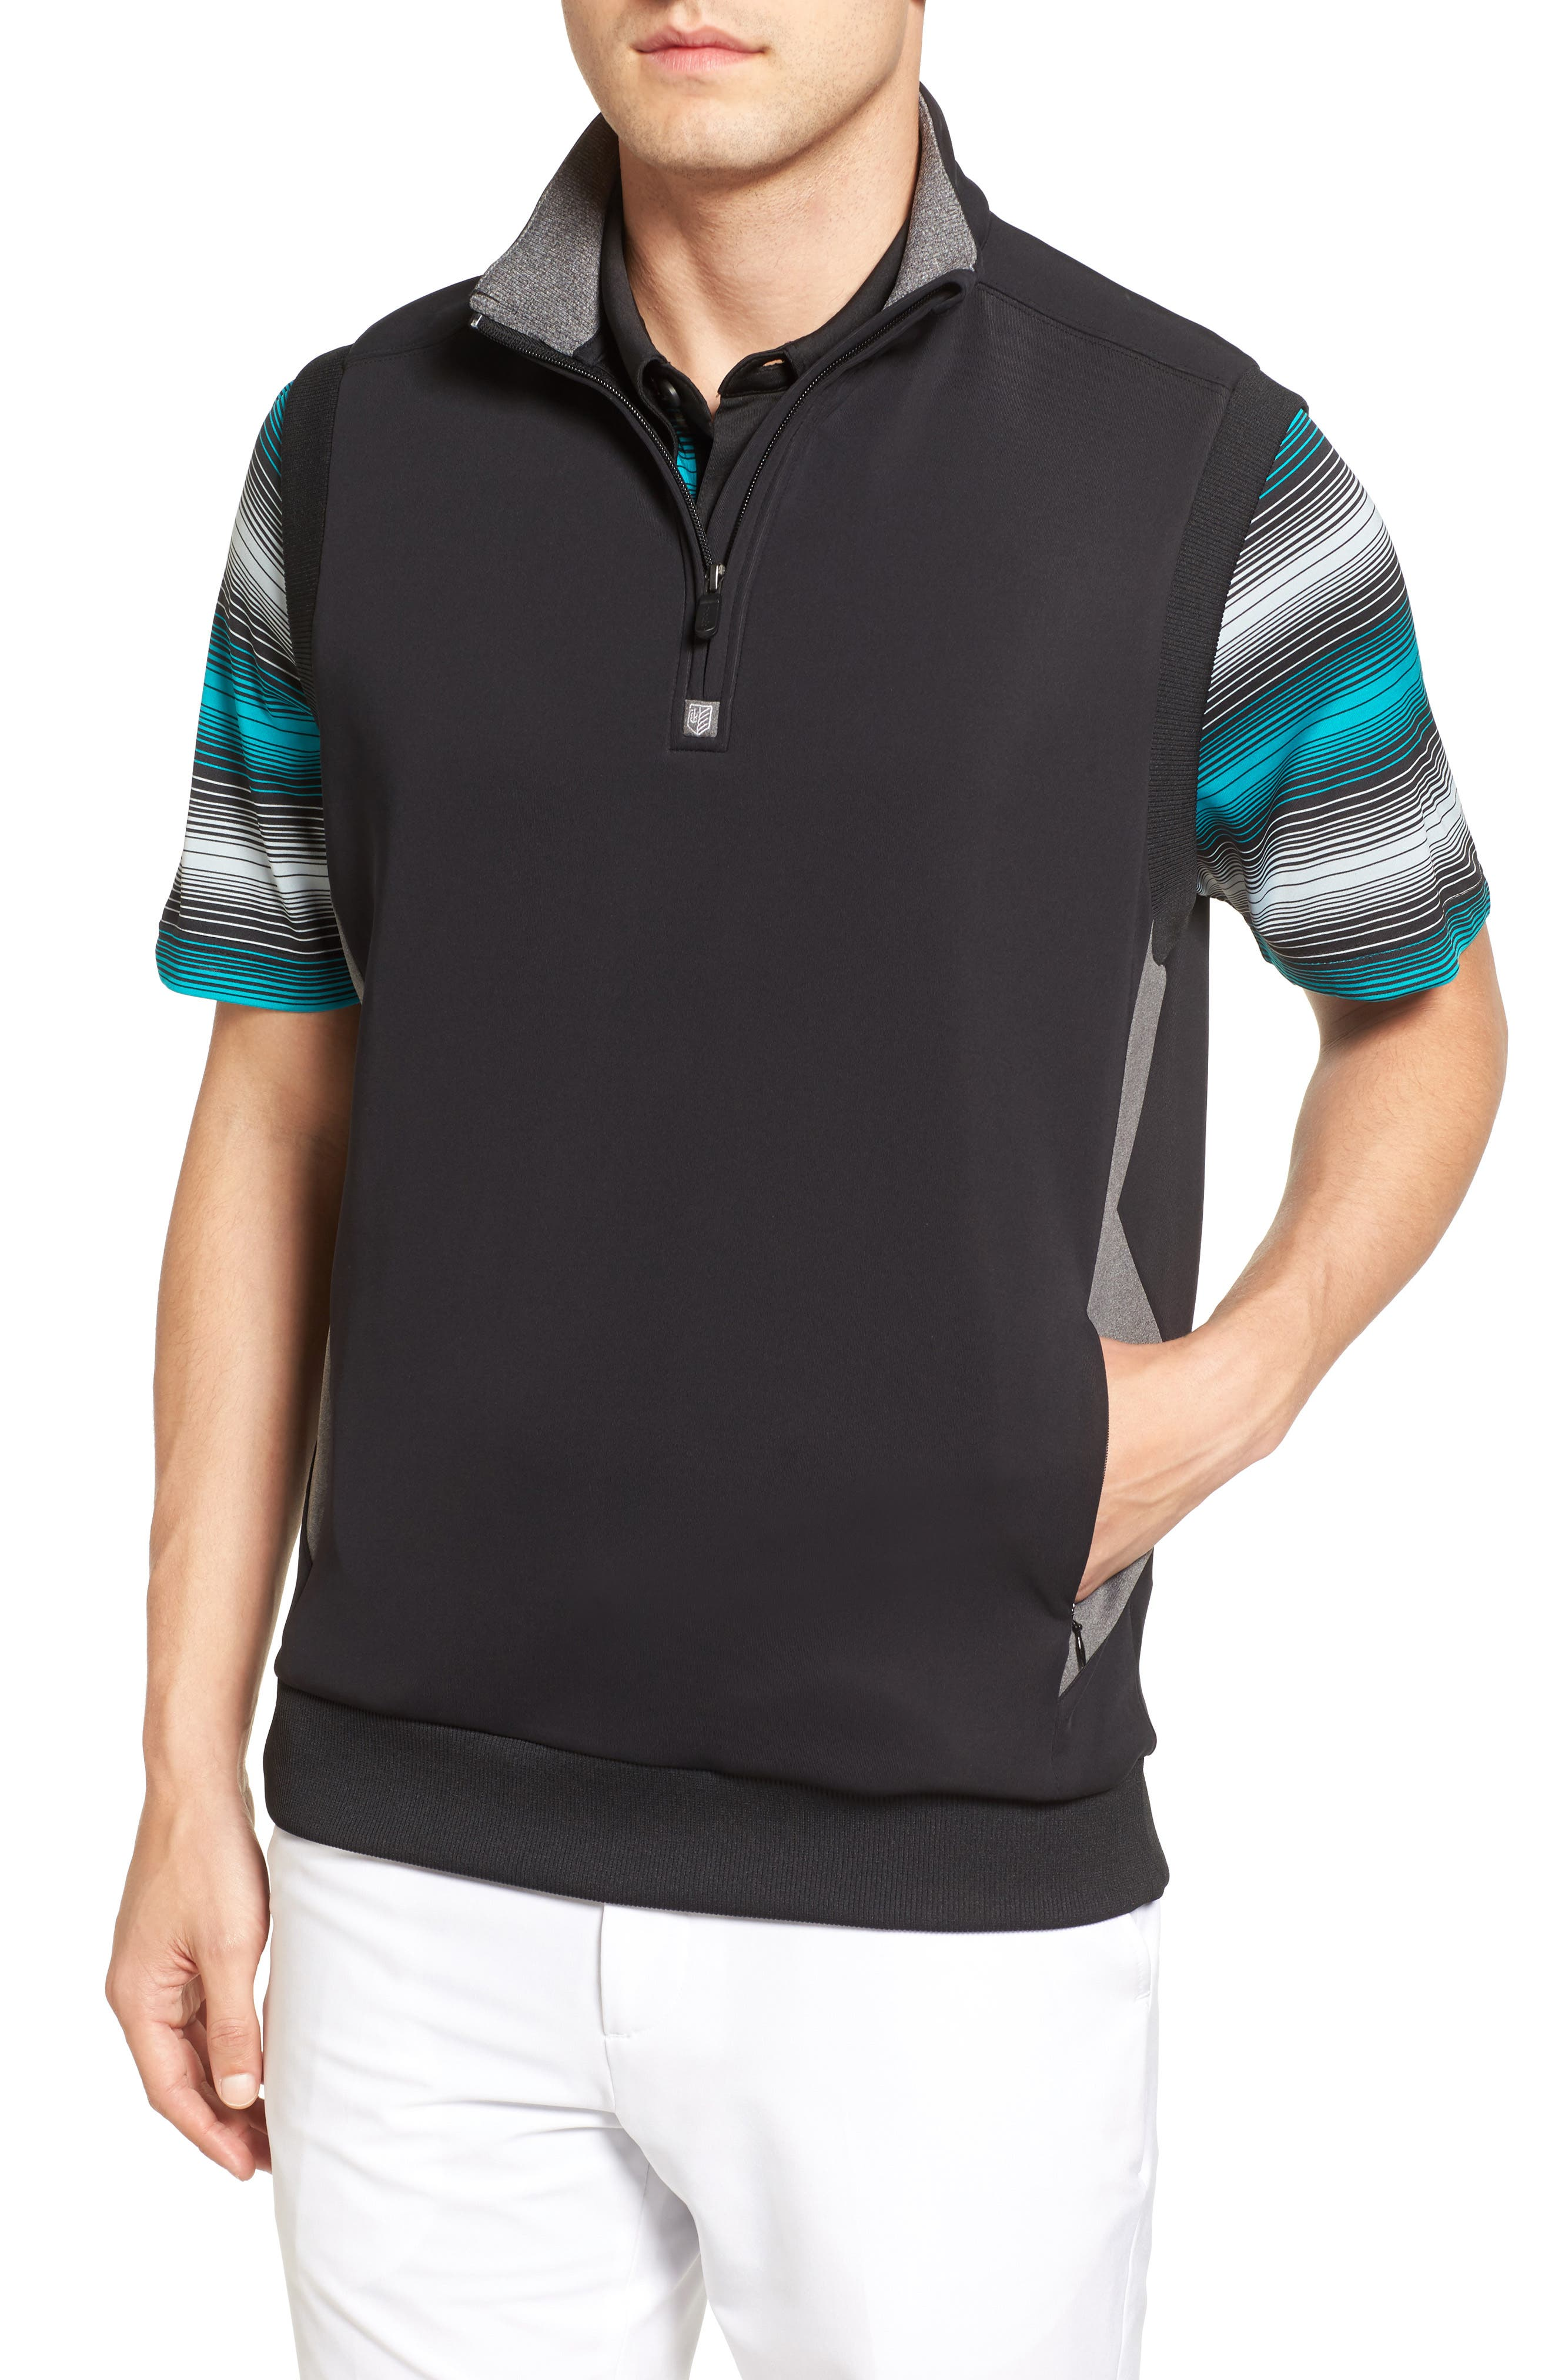 Main Image - Bobby Jones Rule 18 Tech Quarter Zip Vest